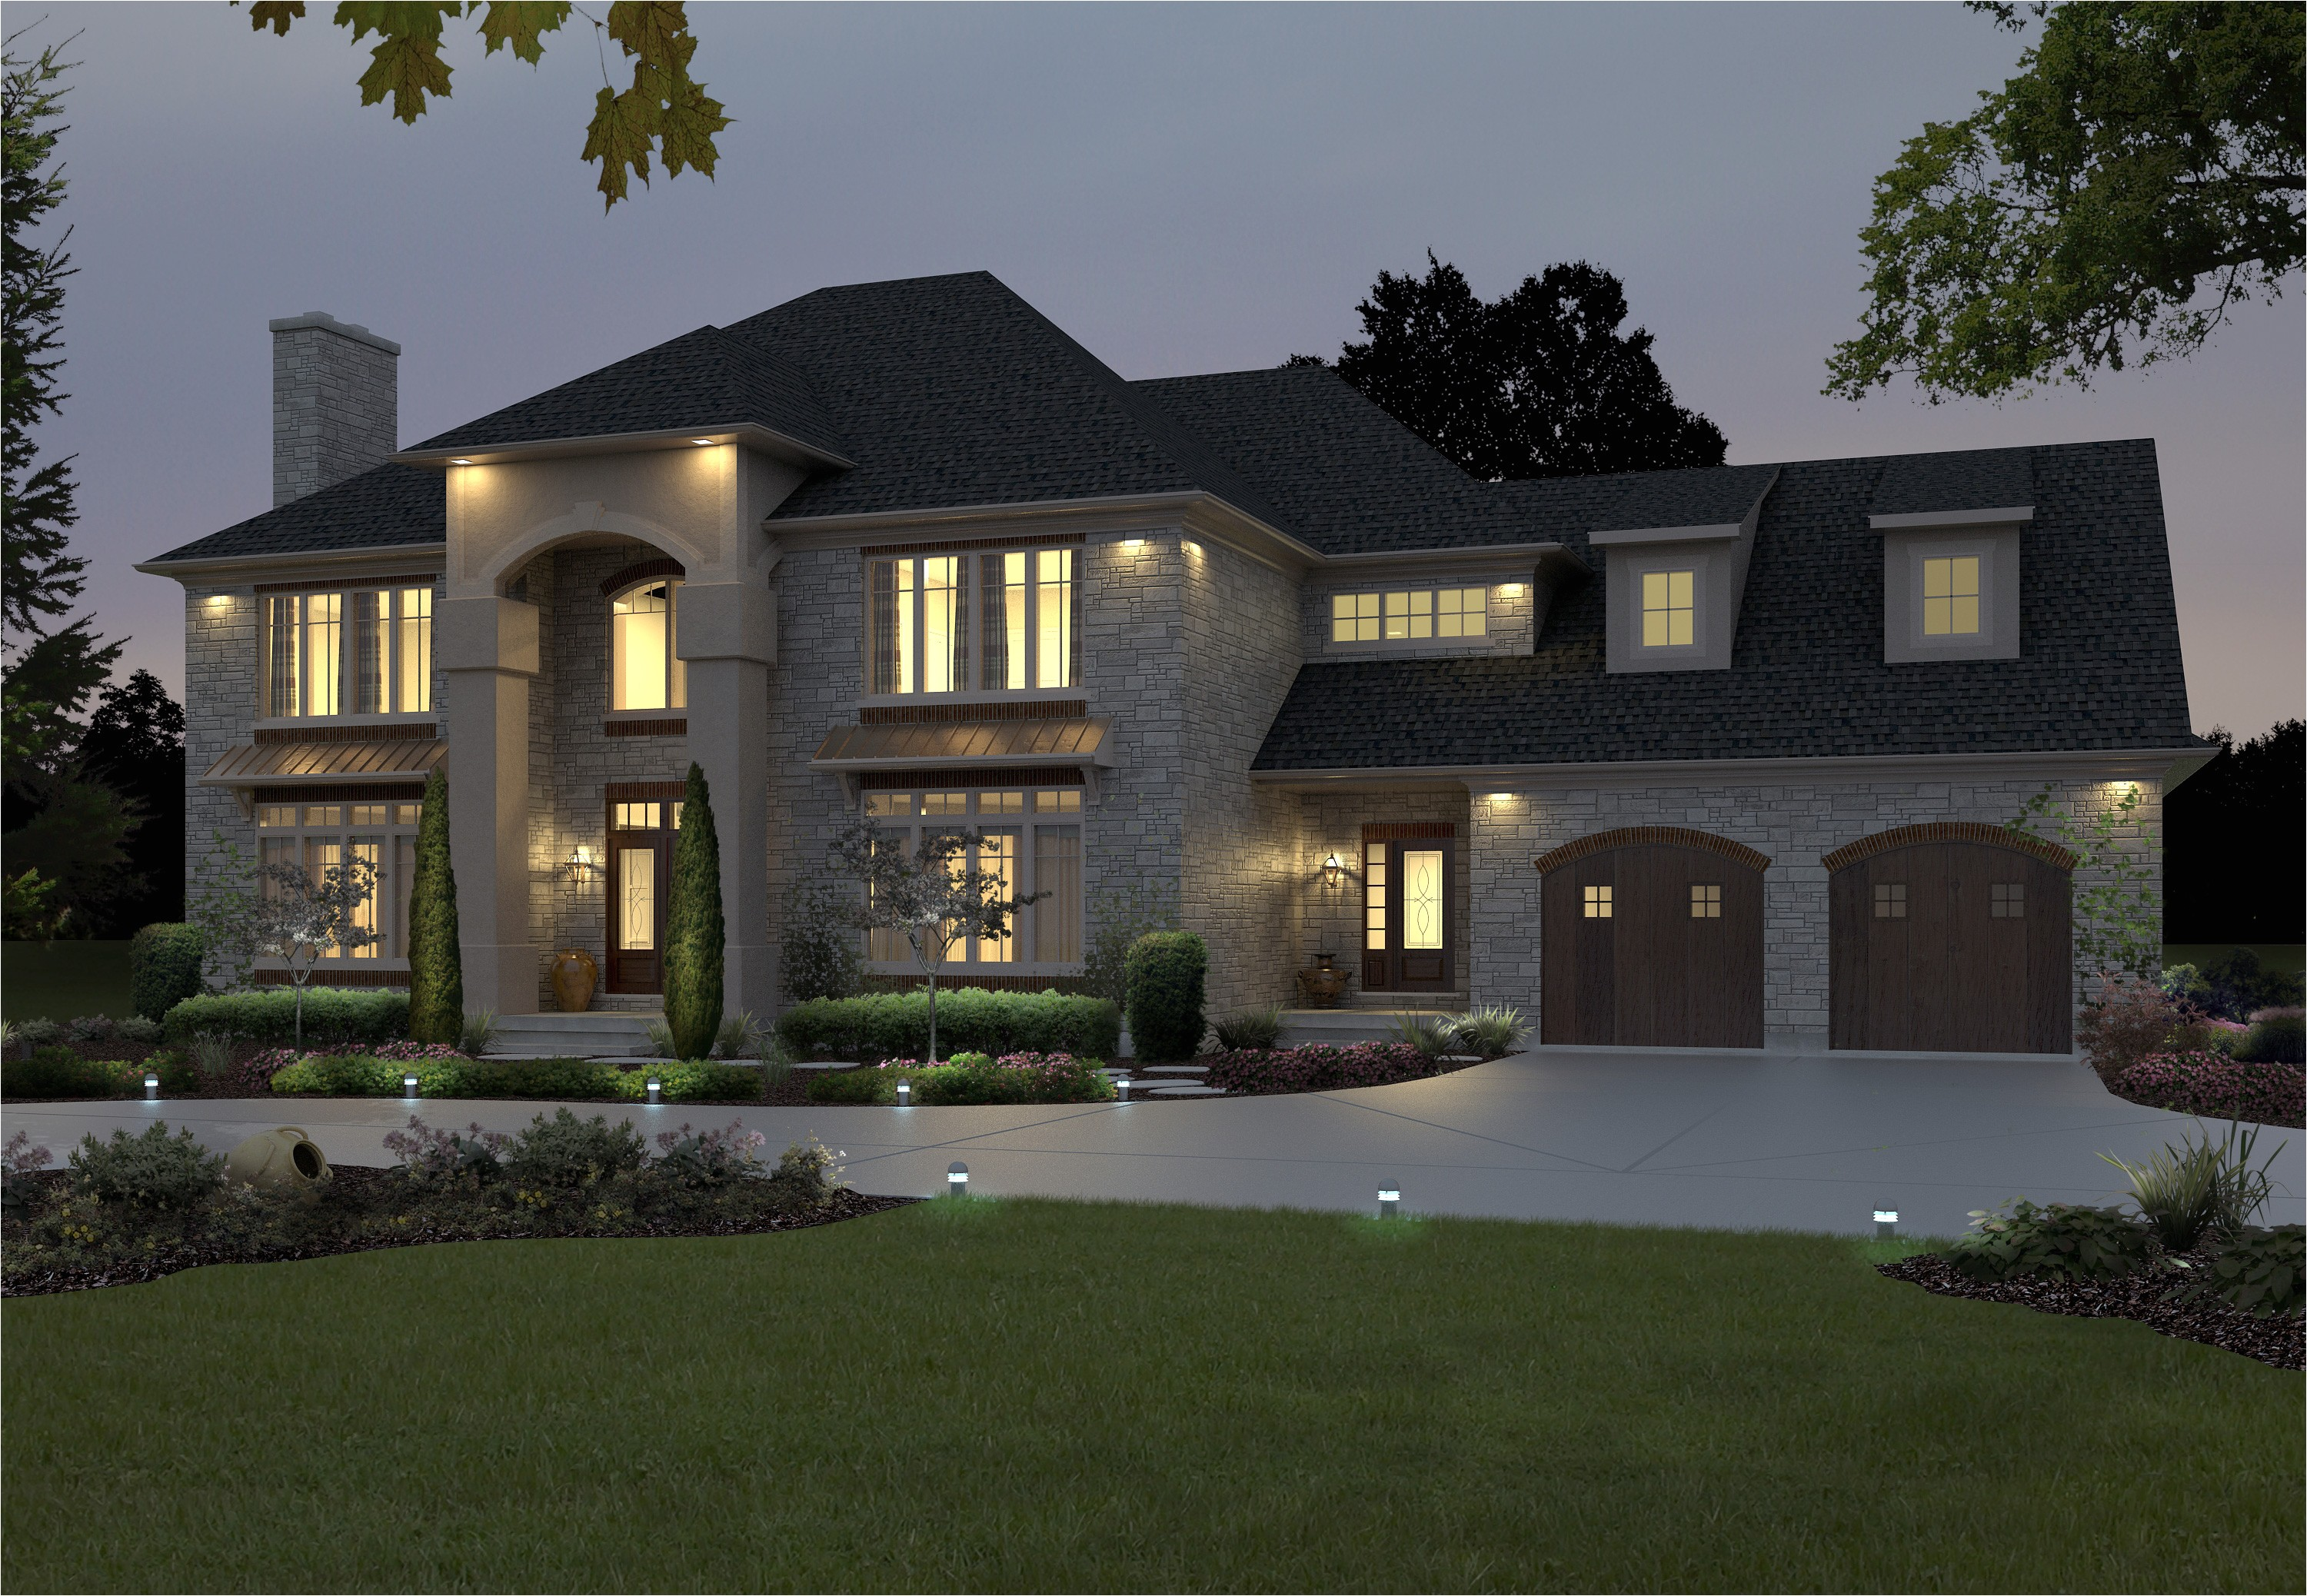 americas best house plans architecture home design interior decorating outstanding luxury with big front garden